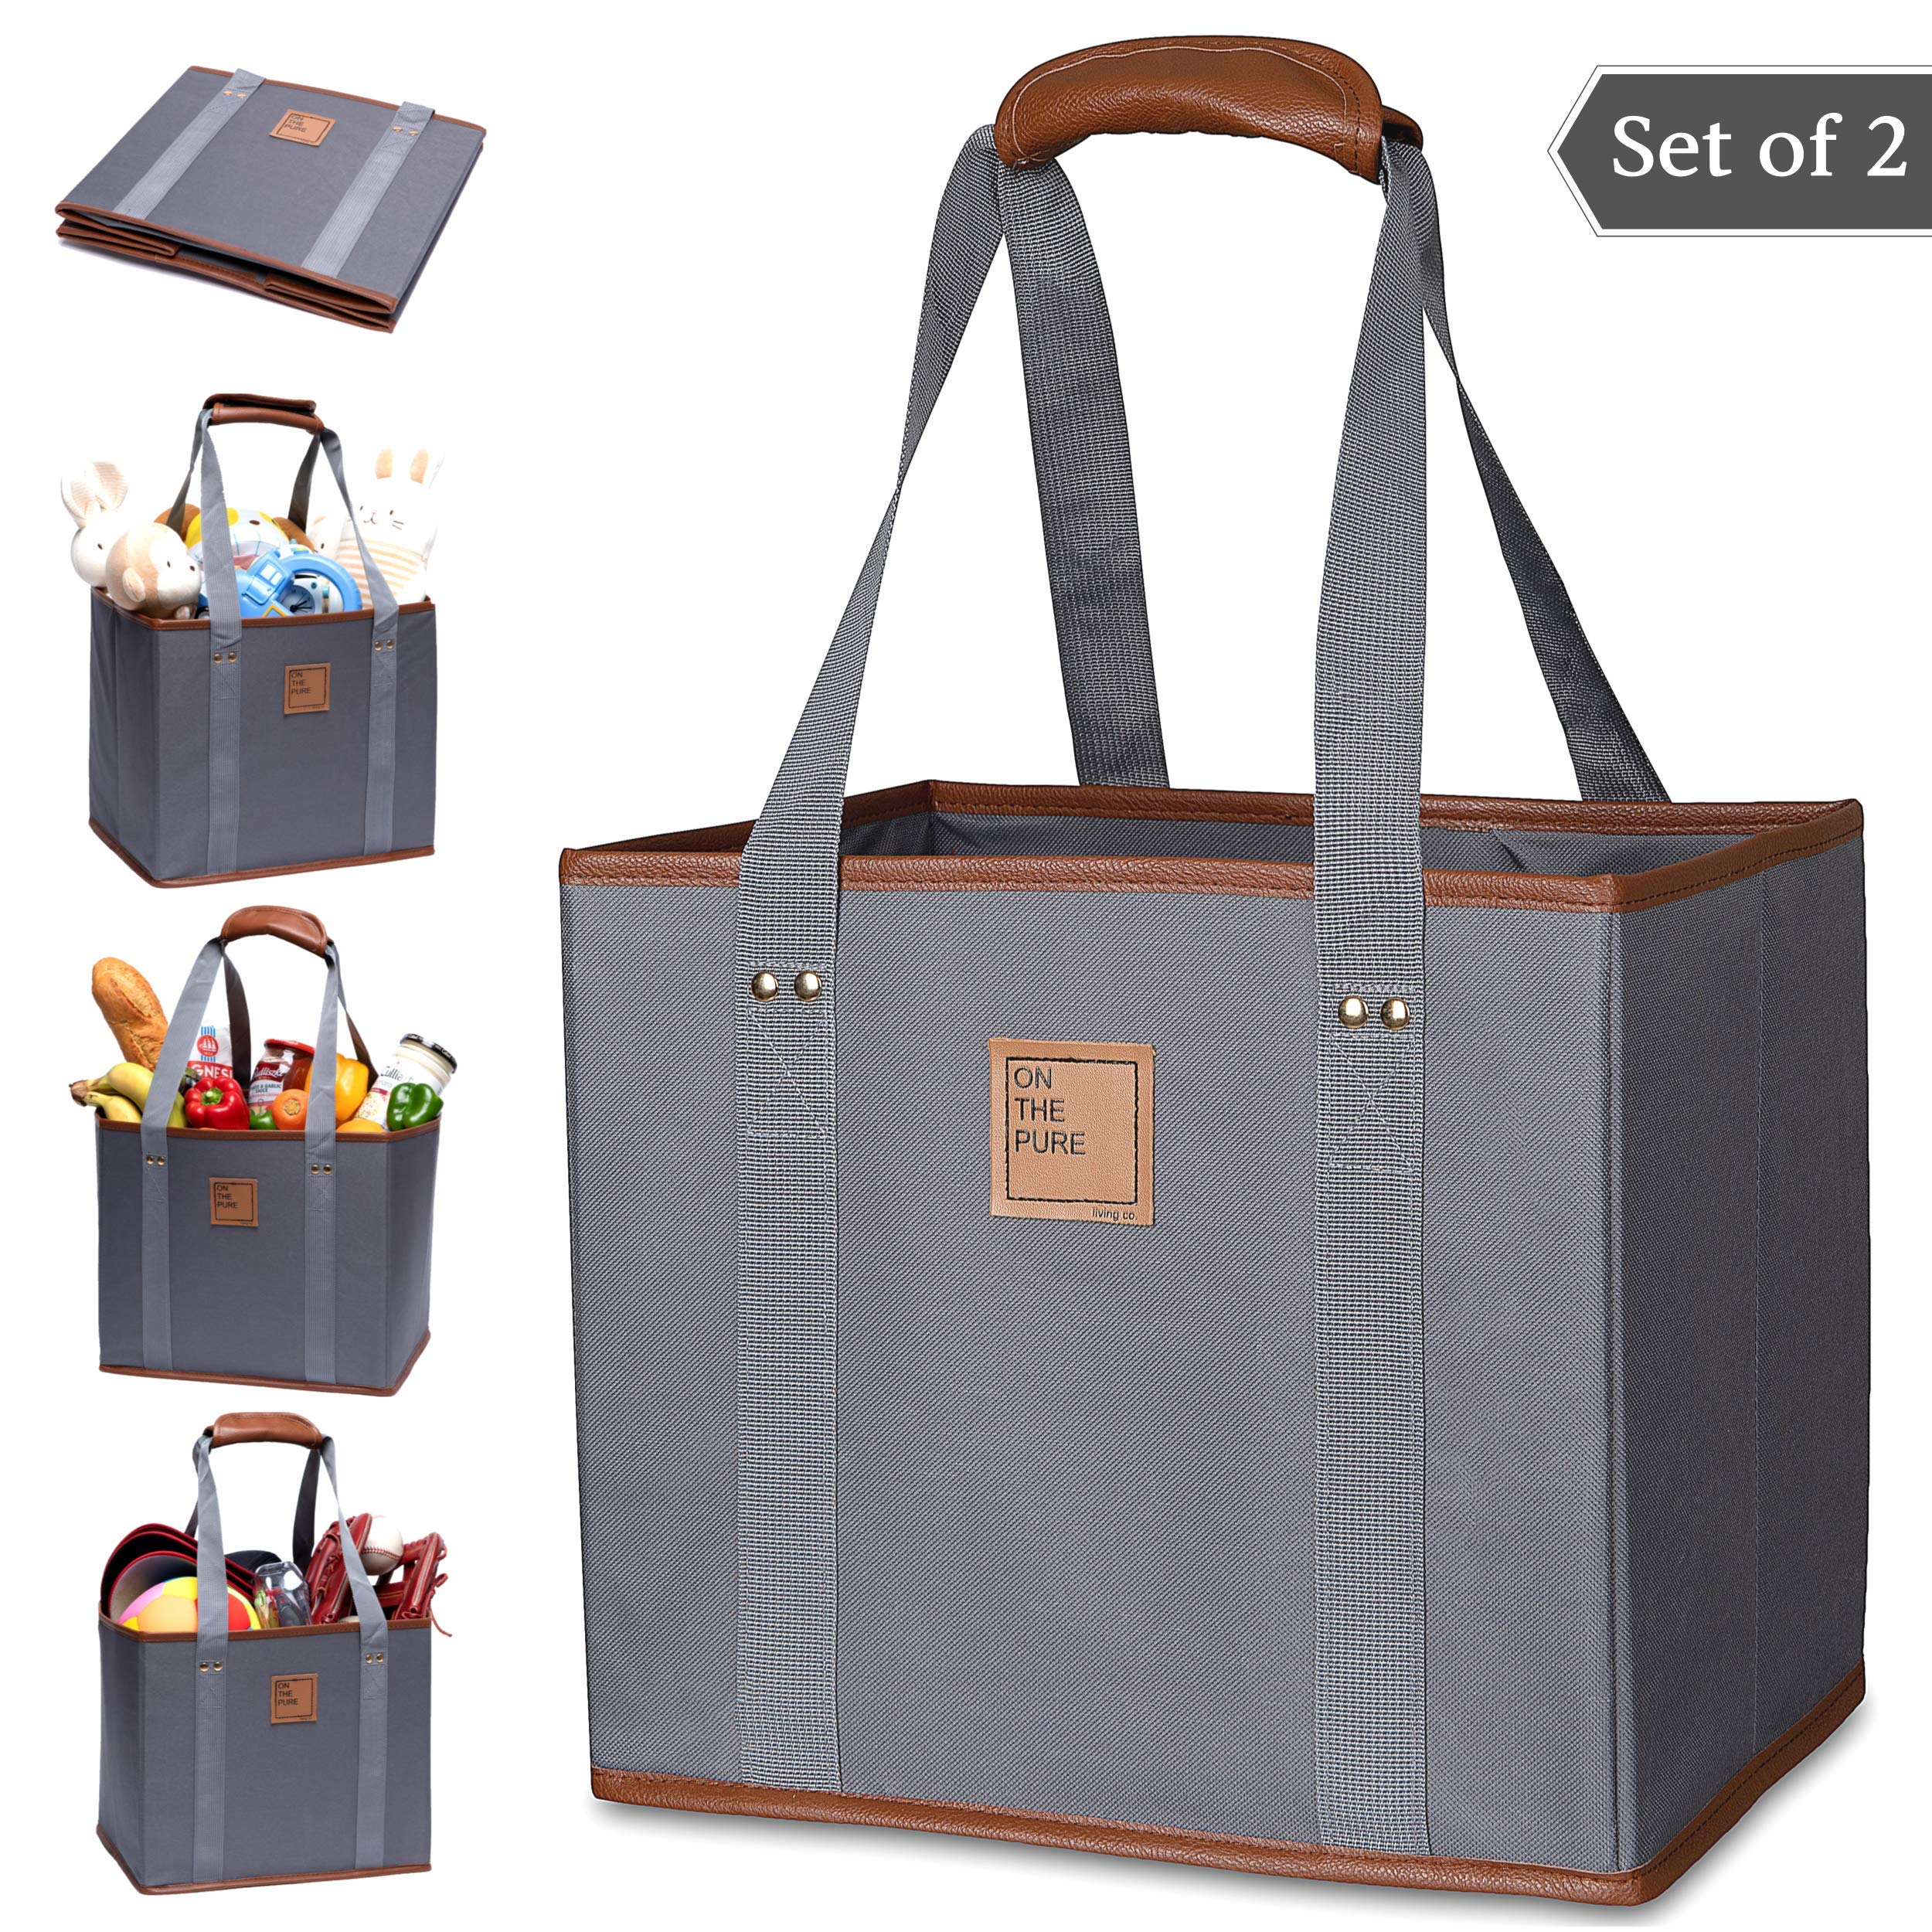 Reusable Grocery Tote Bags(Set of 2, Gray)- Stylish Shopping Box Bag(+PU Leather, Strap Handle, Pocket)- Durable Collapsible Cart Bag(Cotton+, Reinforced Sides and Bottom, Heavy Duty, Large, foldable)